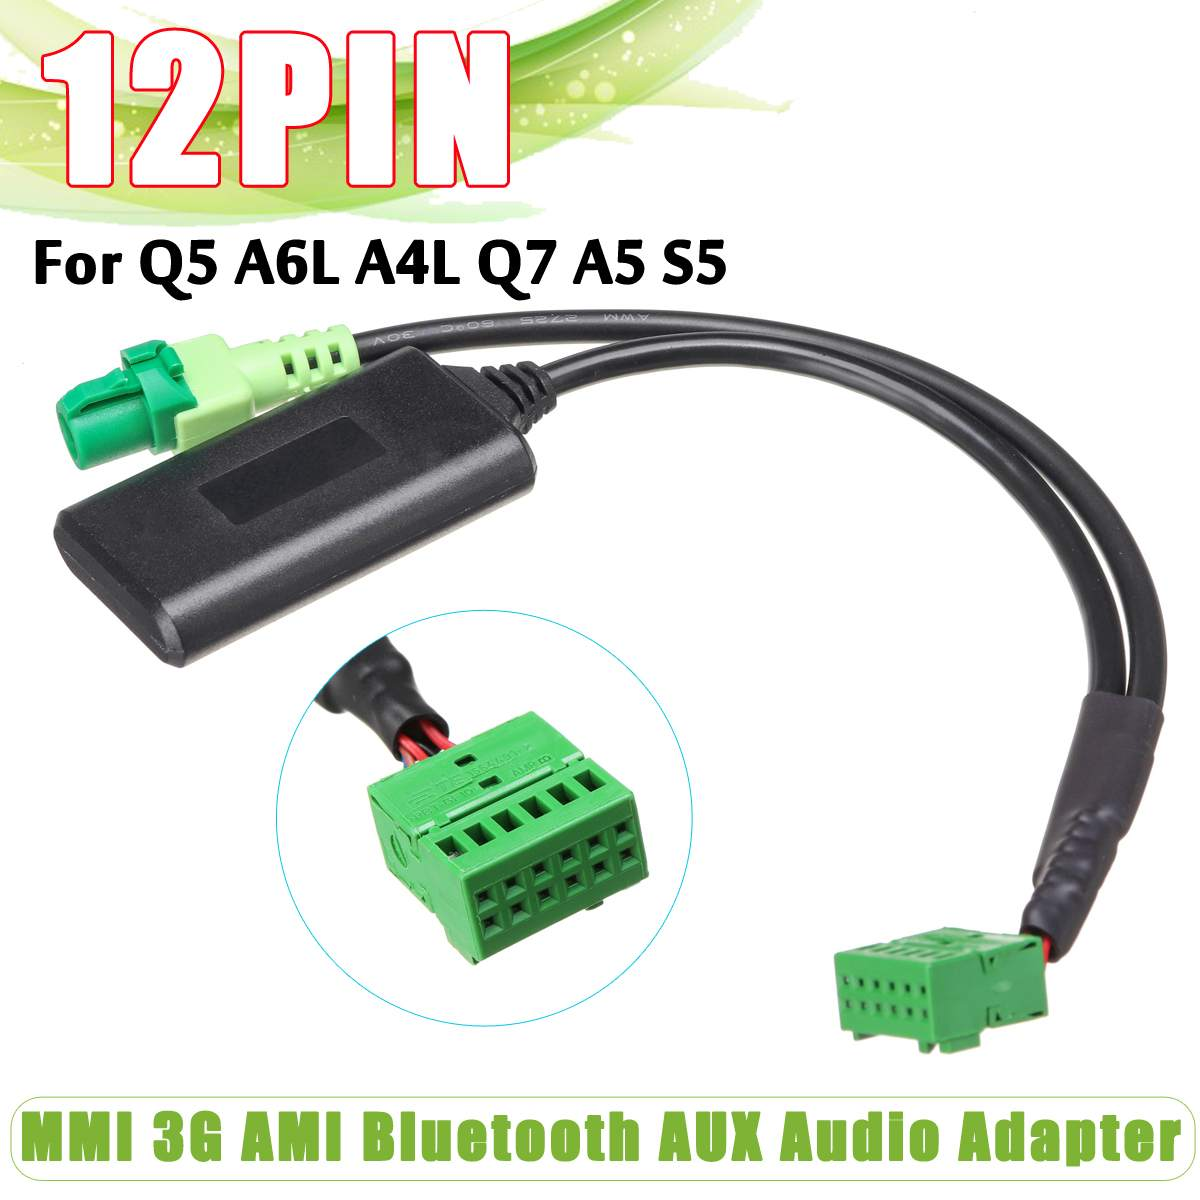 Car MMI 3G AMI Wireless bluetooth AUX Audio Adapter Cable MMI Socket Interface Audio Input For Audi Q5 A6L A4L Q7 A5 S5 for VW(China)